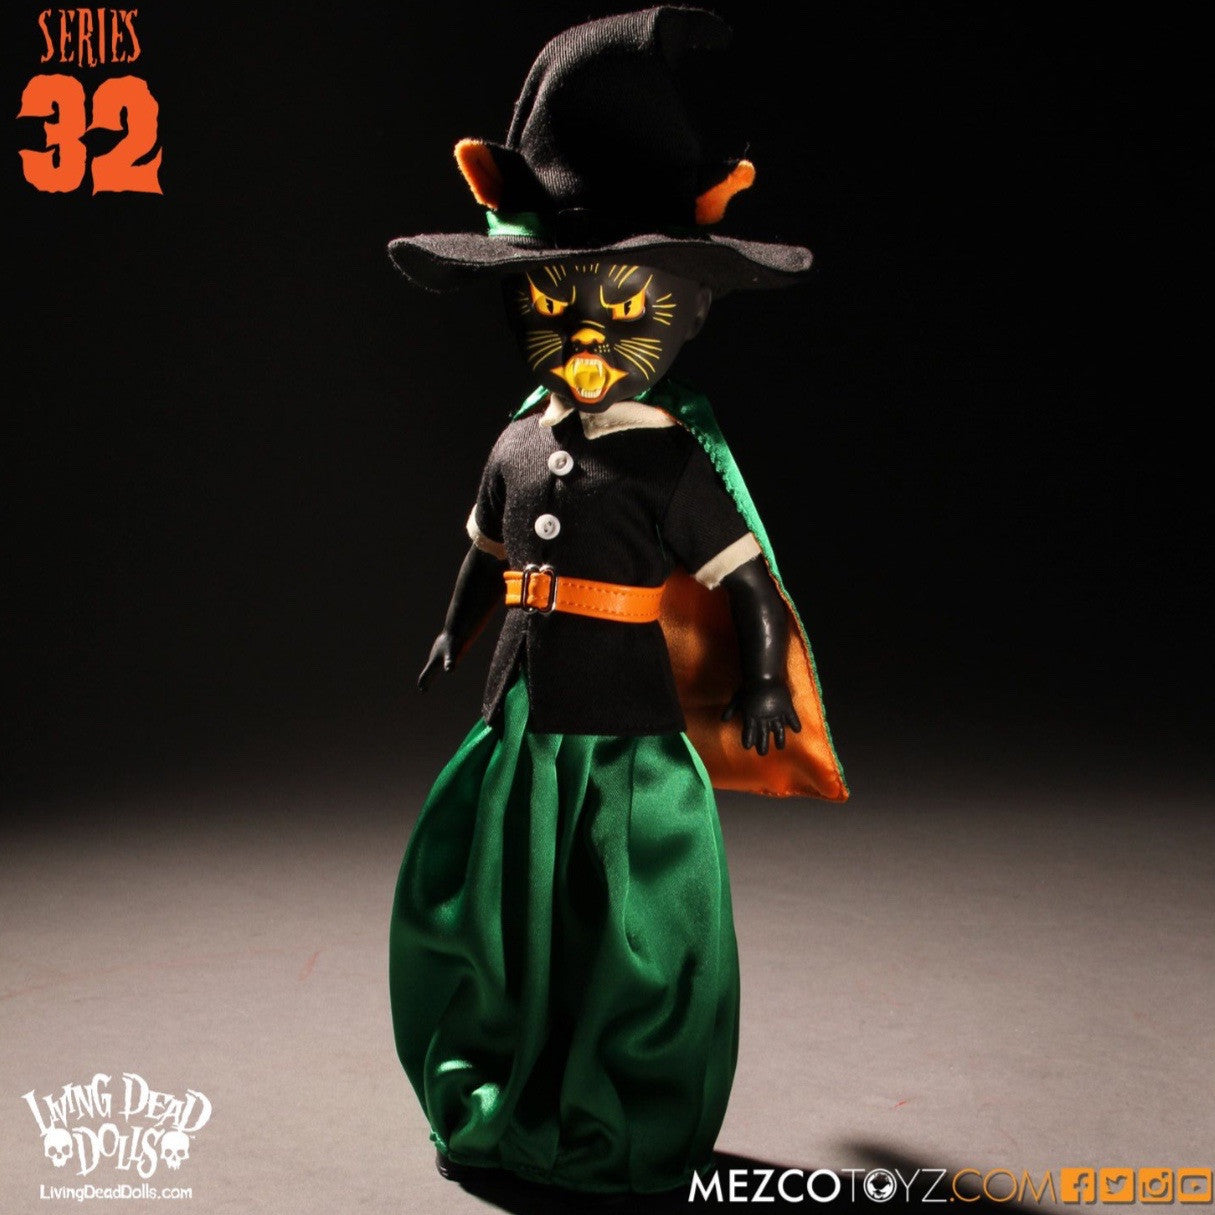 Living Dead Doll Series 32 Black cat witch